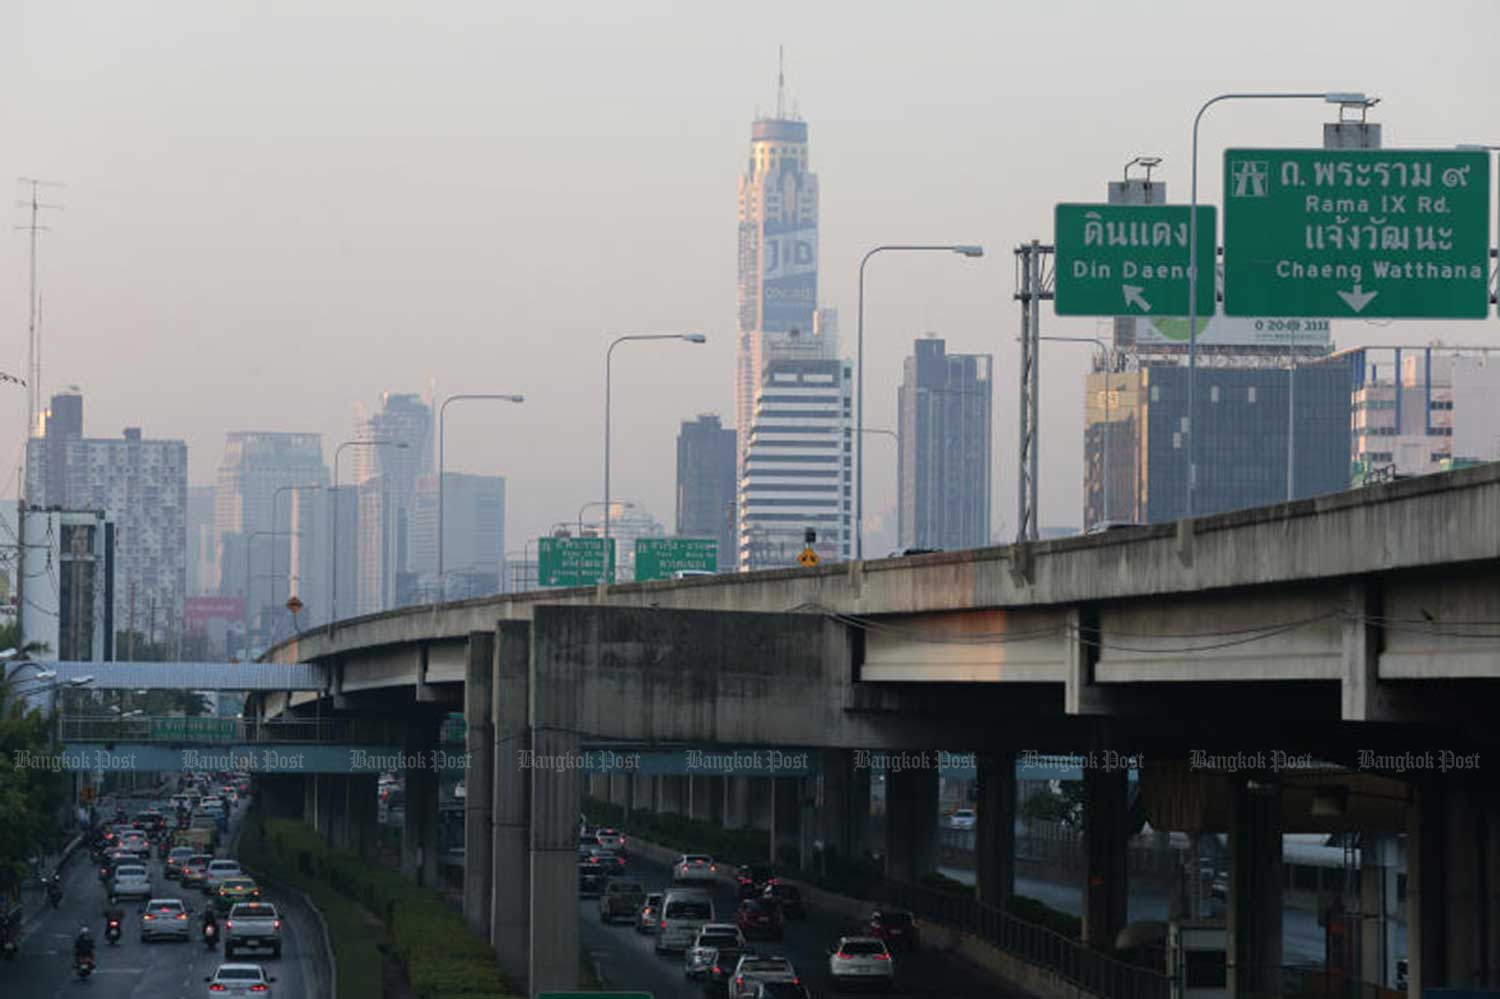 Fine dust levels exceeded safety standards in several areas in Bangkok on Wednesday mporning. (Photo by Patipat Janthong)